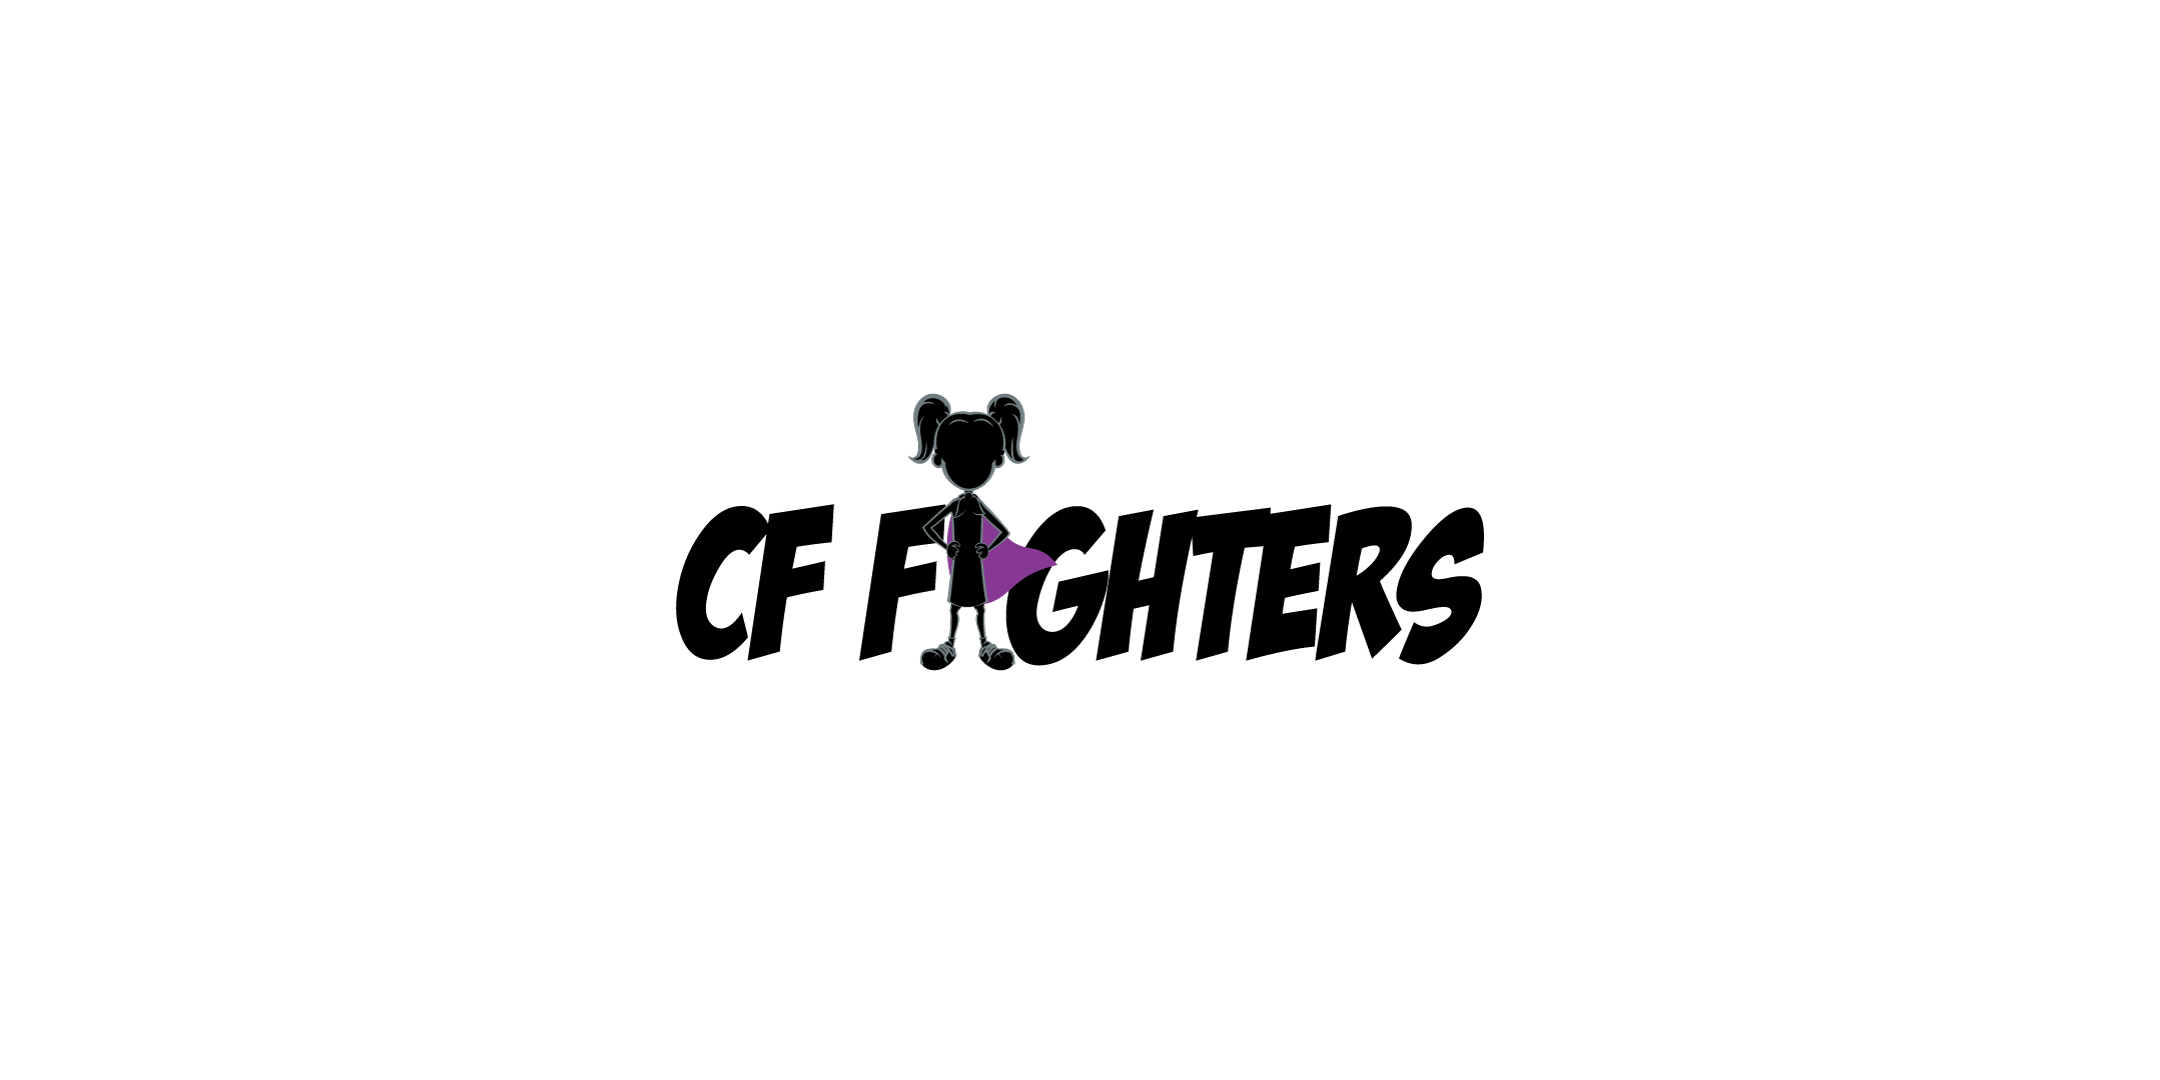 CF Fighters Annual Golf Outing